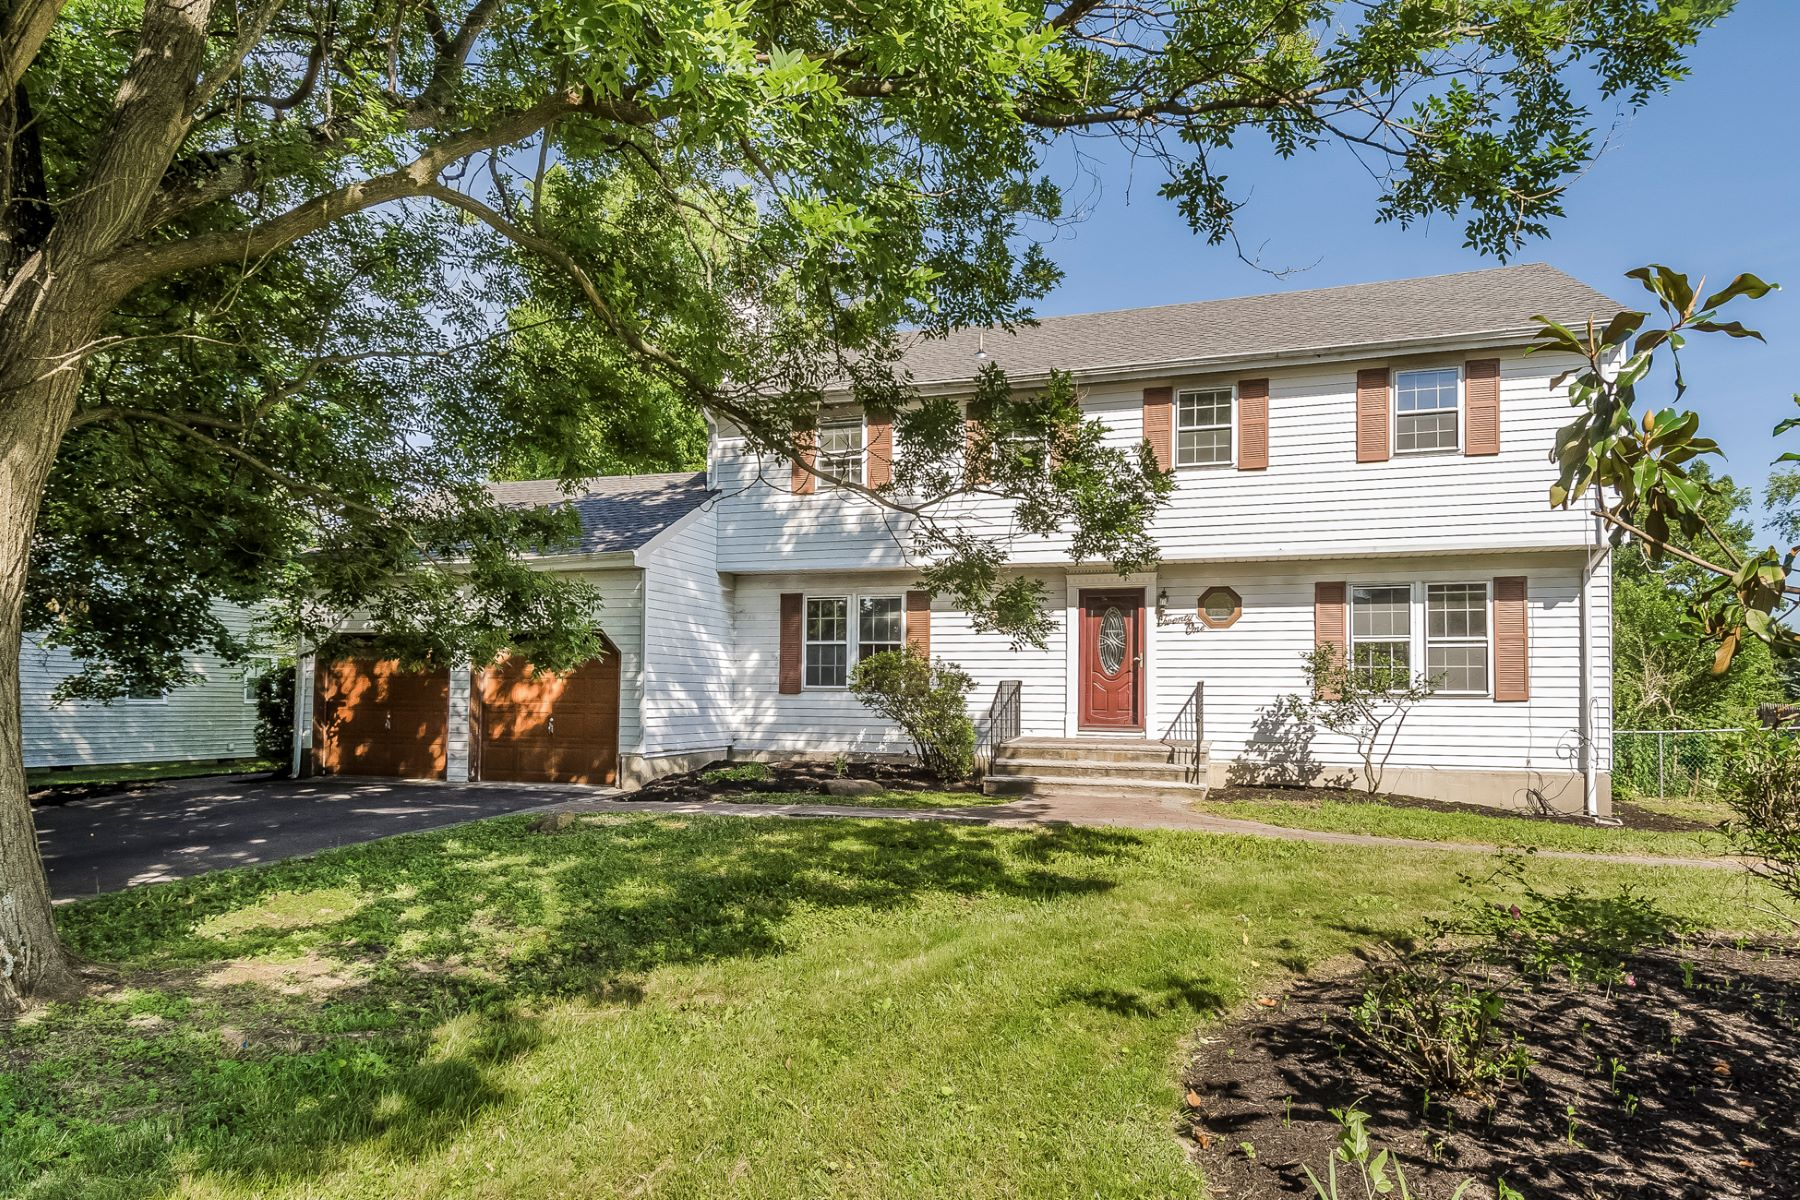 Single Family Home for Sale at Full of Potential 21 Heathwood Drive, Hightstown, New Jersey 08520 United StatesMunicipality: East Windsor Township